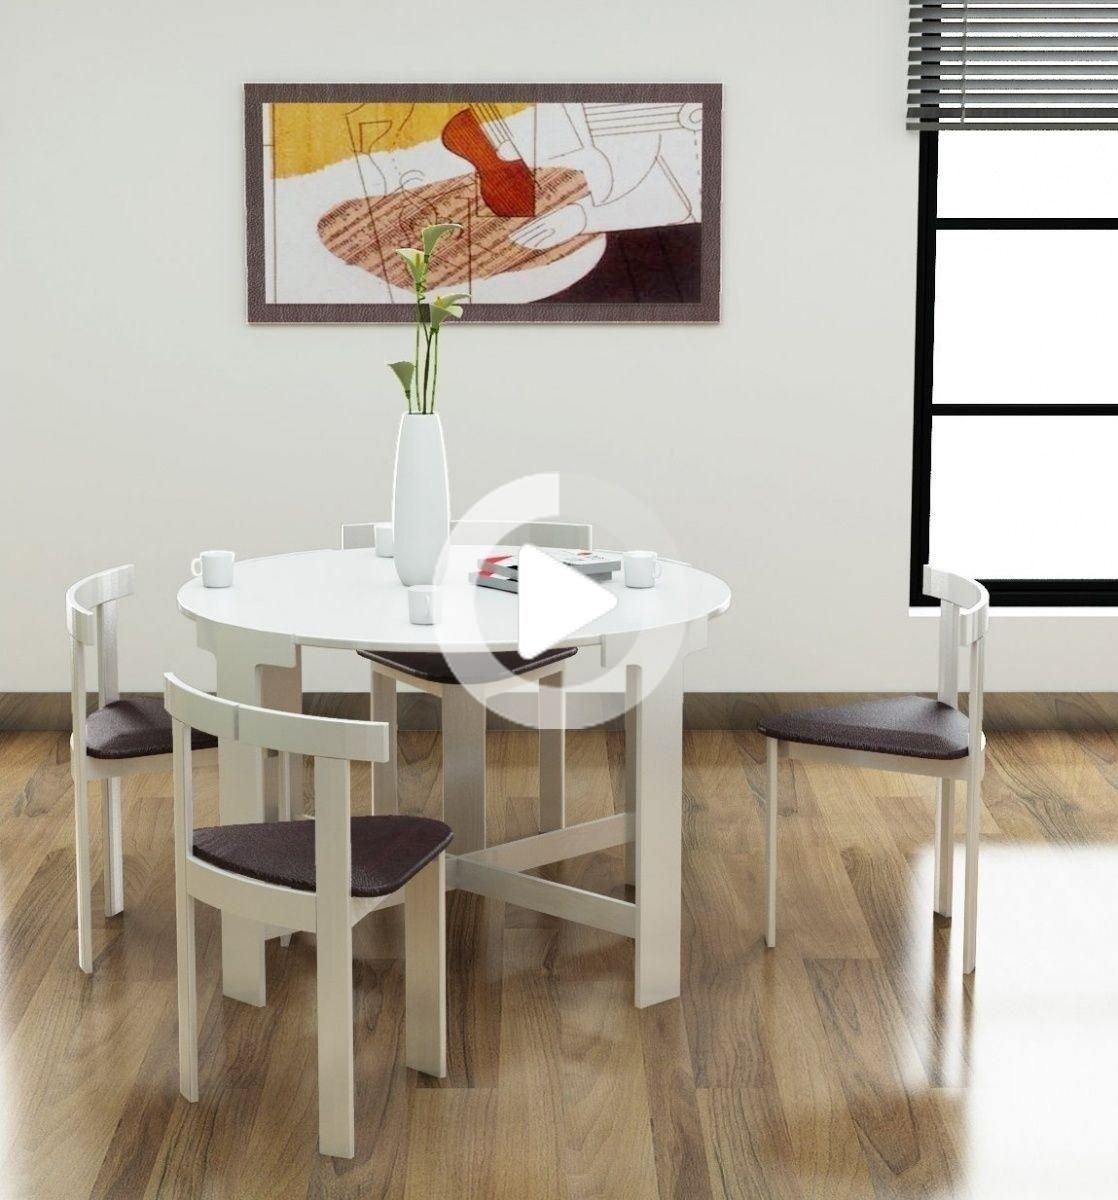 Good Dinette Sets For Small Spaces 2